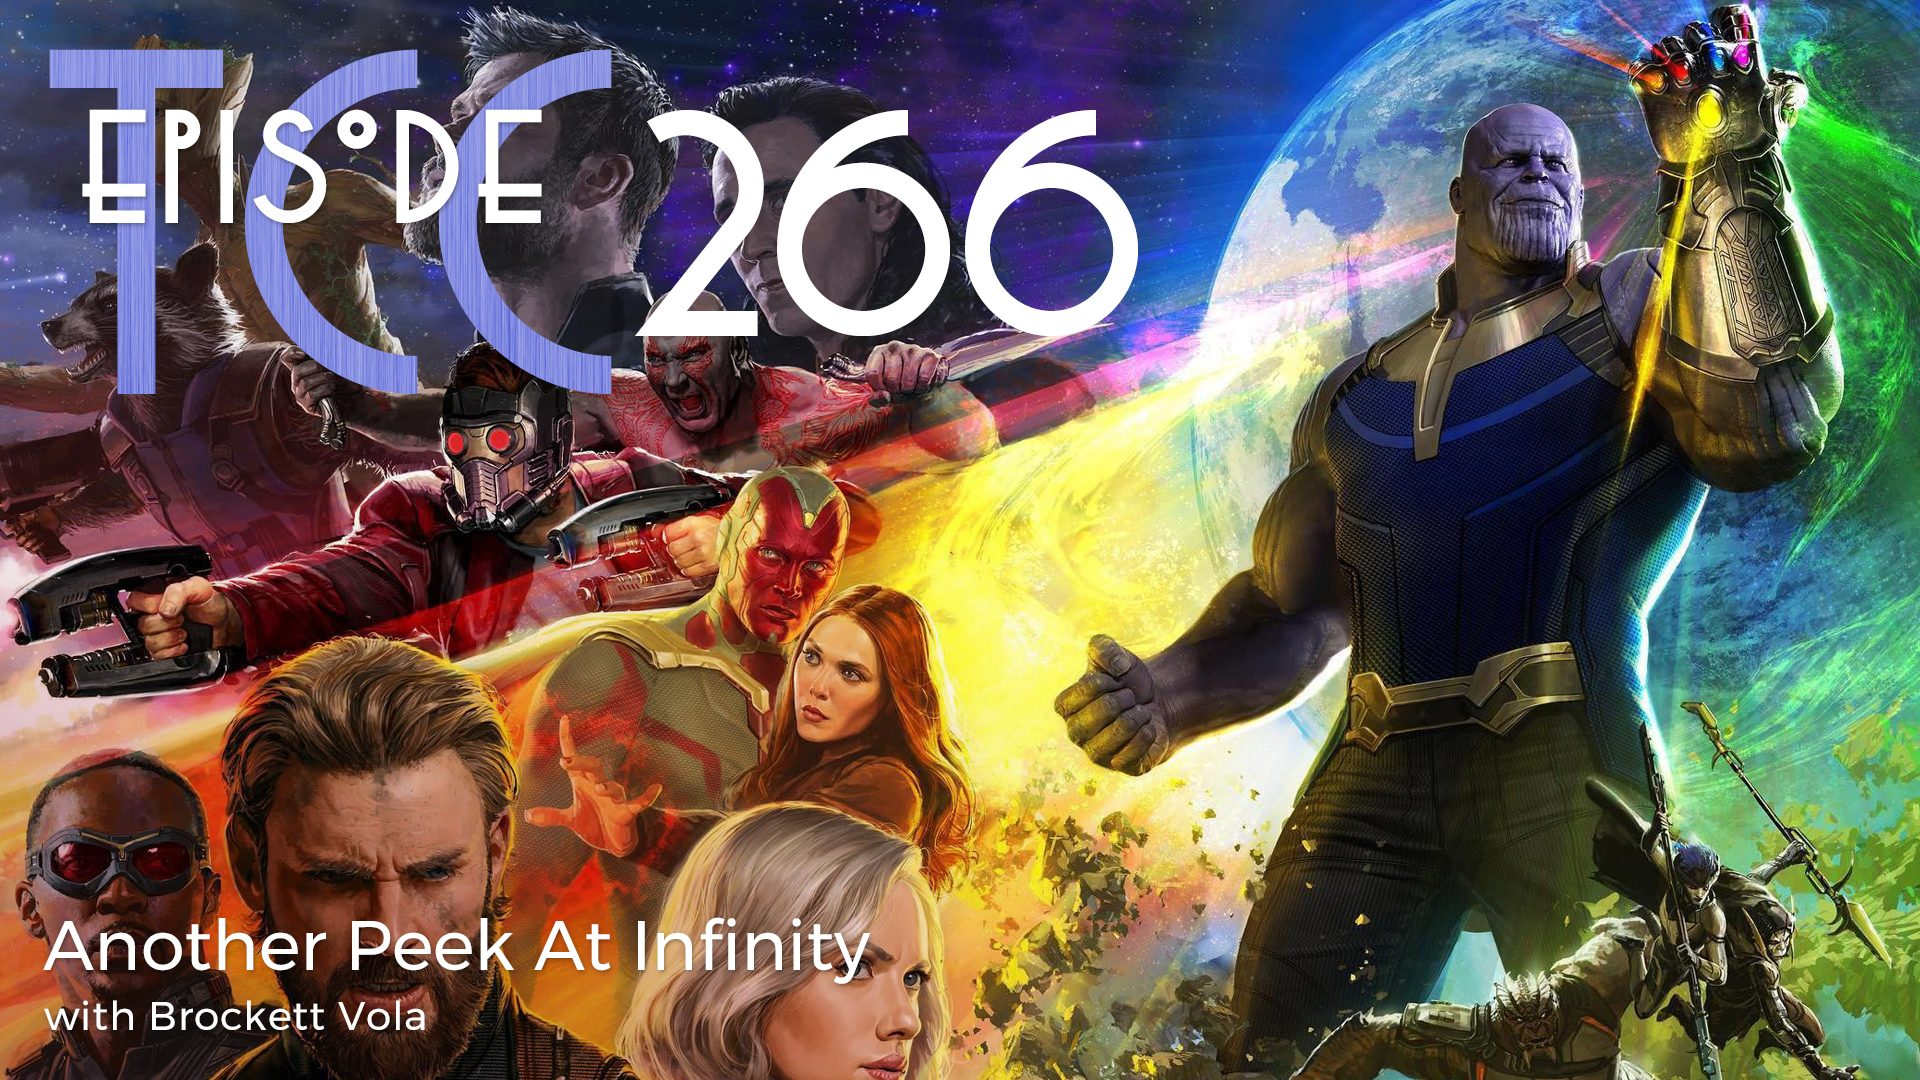 The Citadel Cafe 266: Another Peek At Infinity